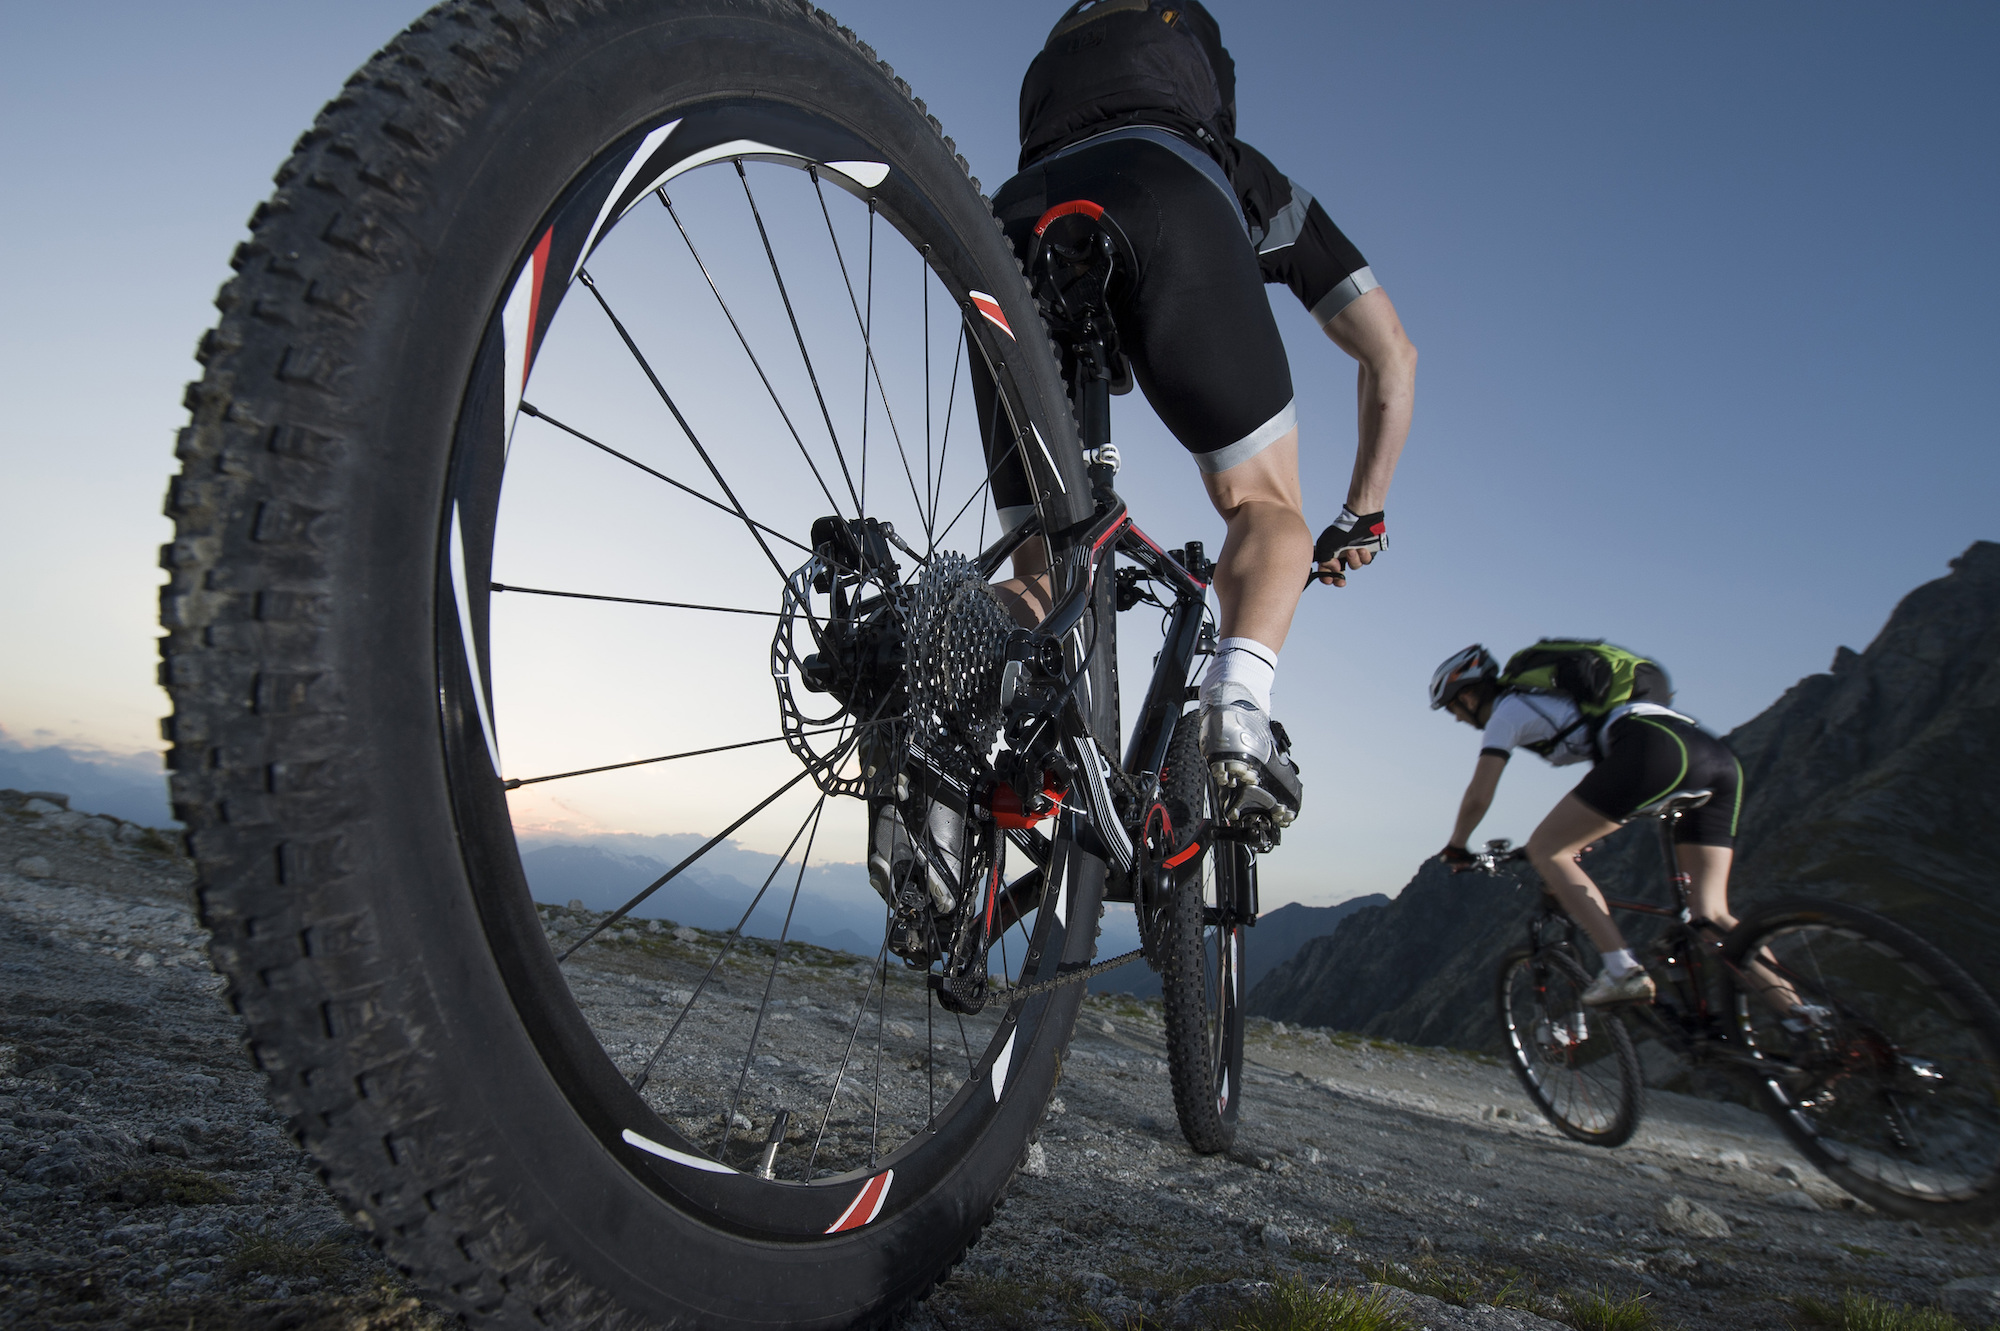 Mountain biking doesn't have to cost thousands of dollars. These are the best mountain bikes under $500 for beginner mountain bikers on a budget.